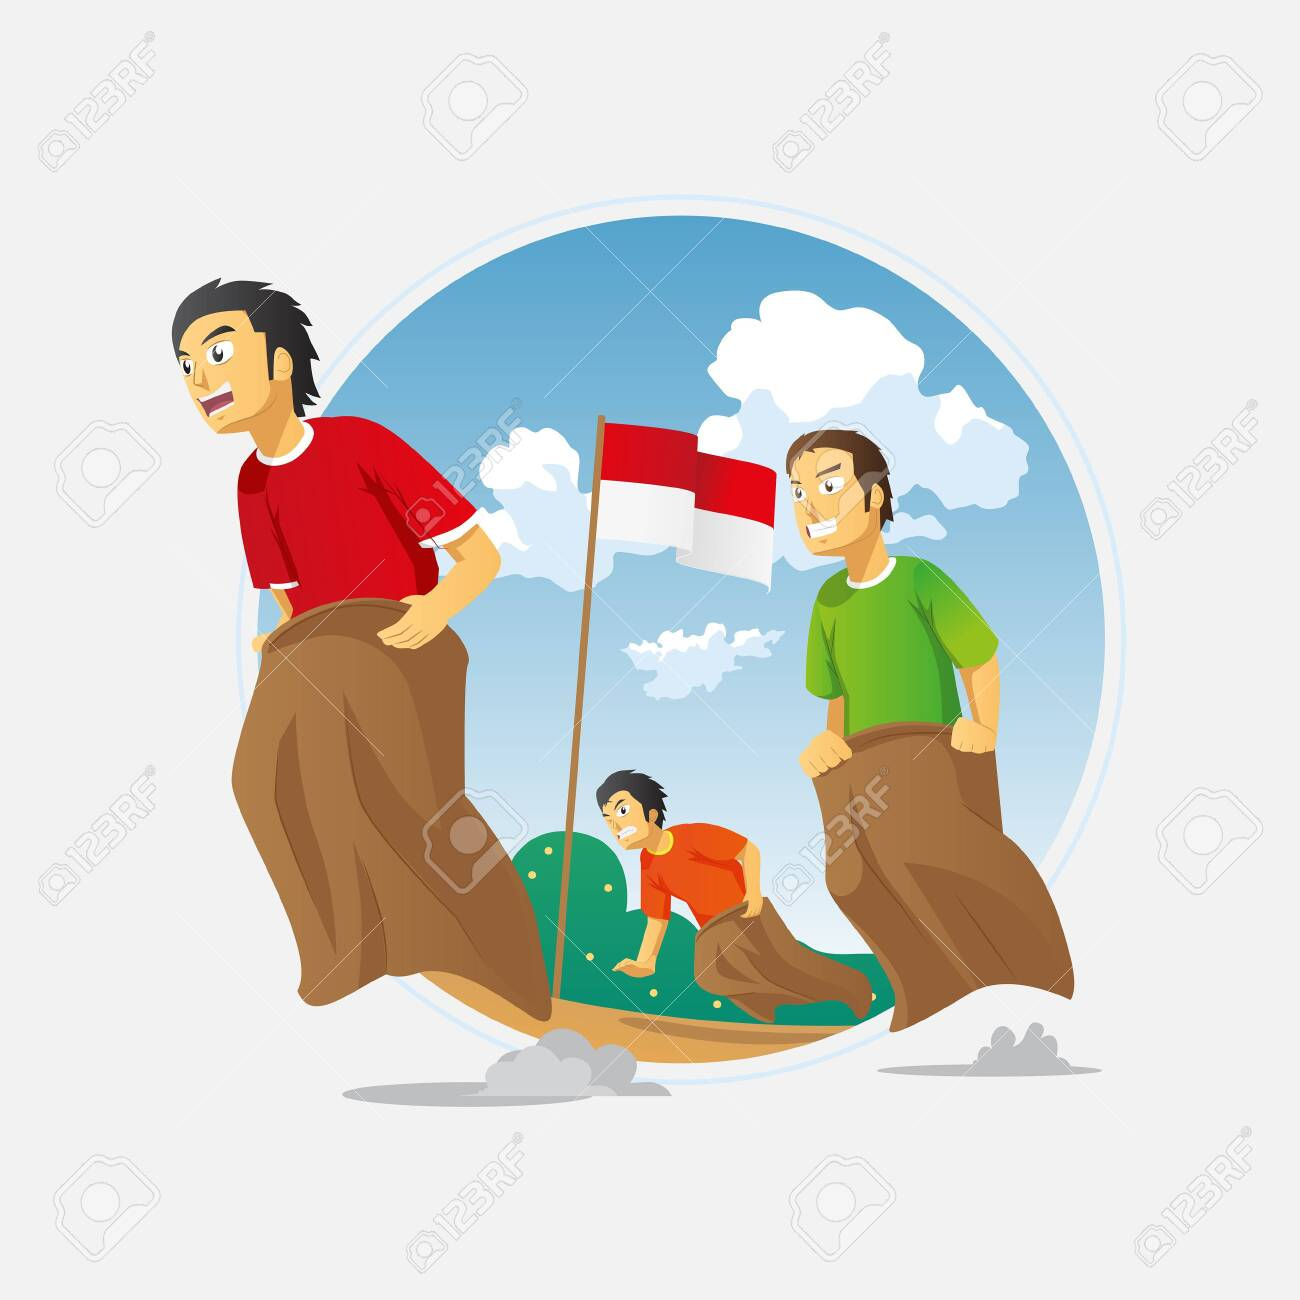 Lomba Balap Karung 17 Agustus Translate Sack Race Competition Royalty Free Cliparts Vectors And Stock Illustration Image 143652375